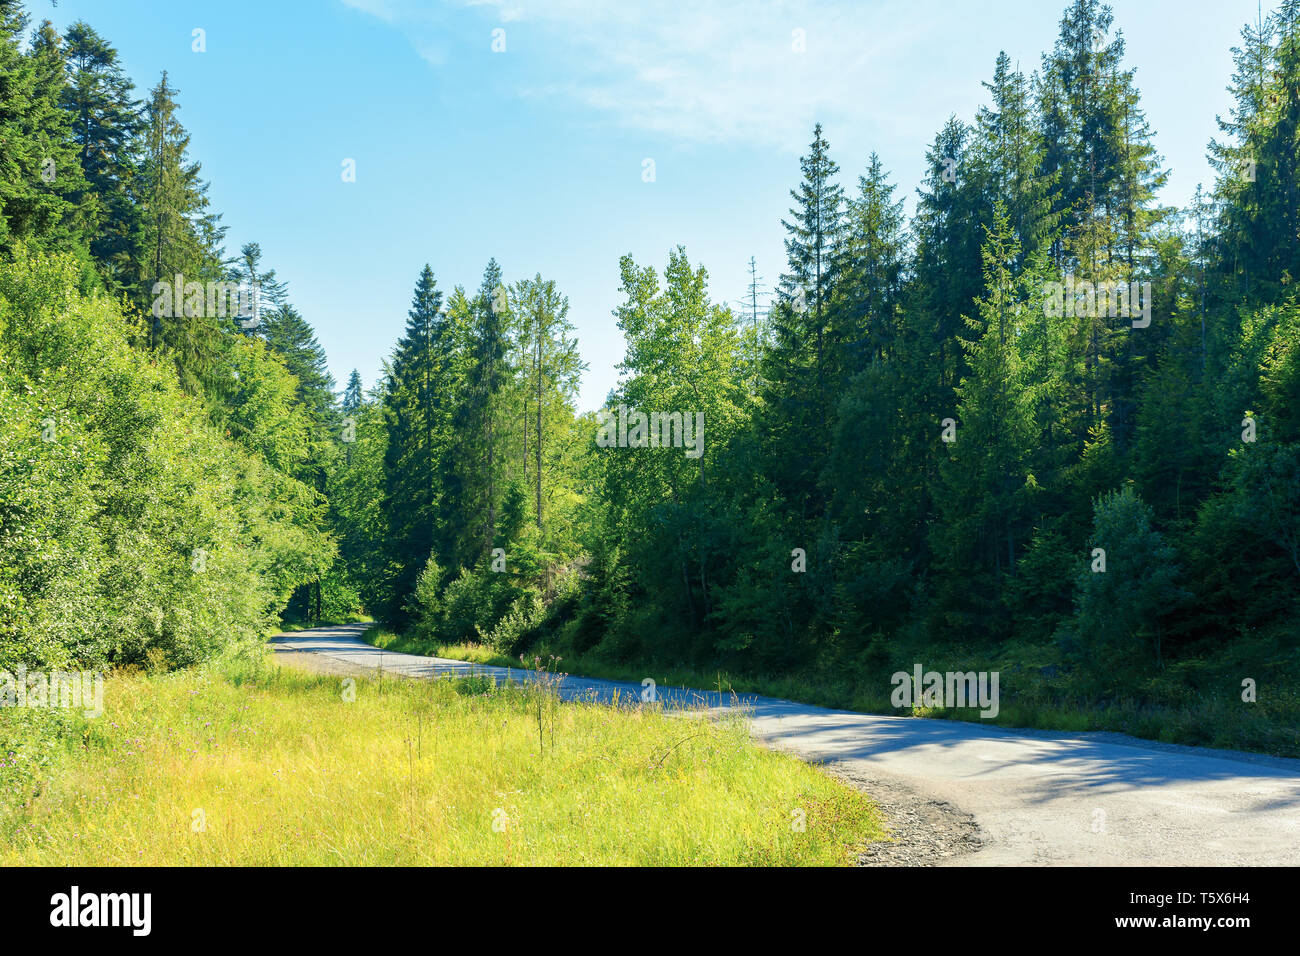 serpentine winding through country forest. beautiful scenery on a bright summer day. explore back country - travel by car concept. transportation back - Stock Image